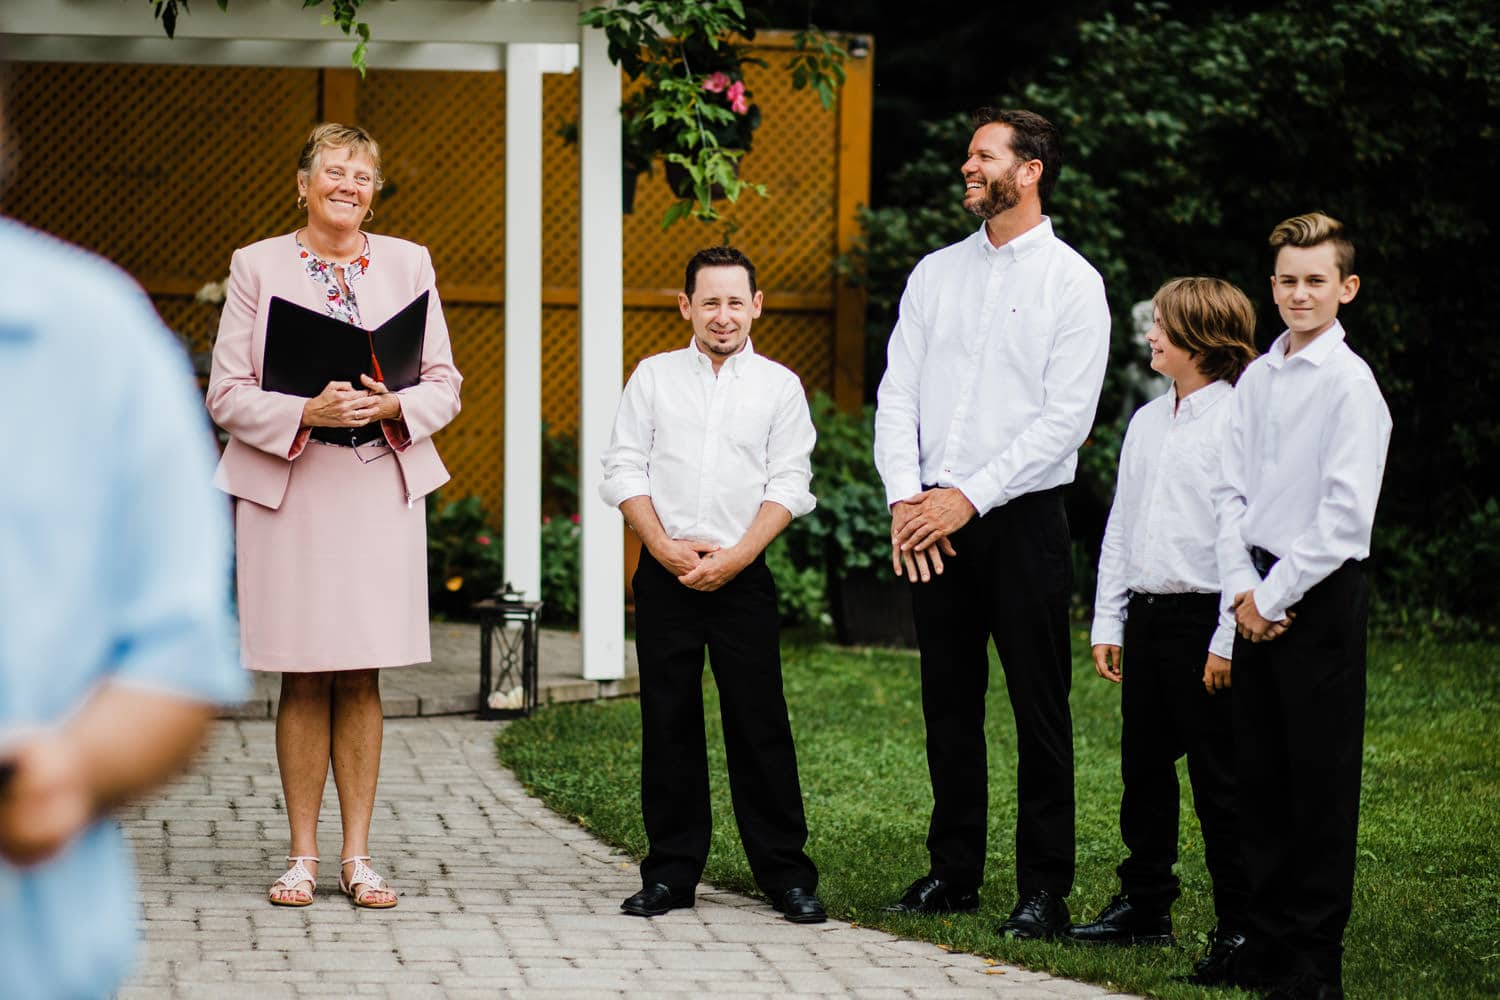 groom sees bride at the end of the aisle - small wedding at the schoolhouse